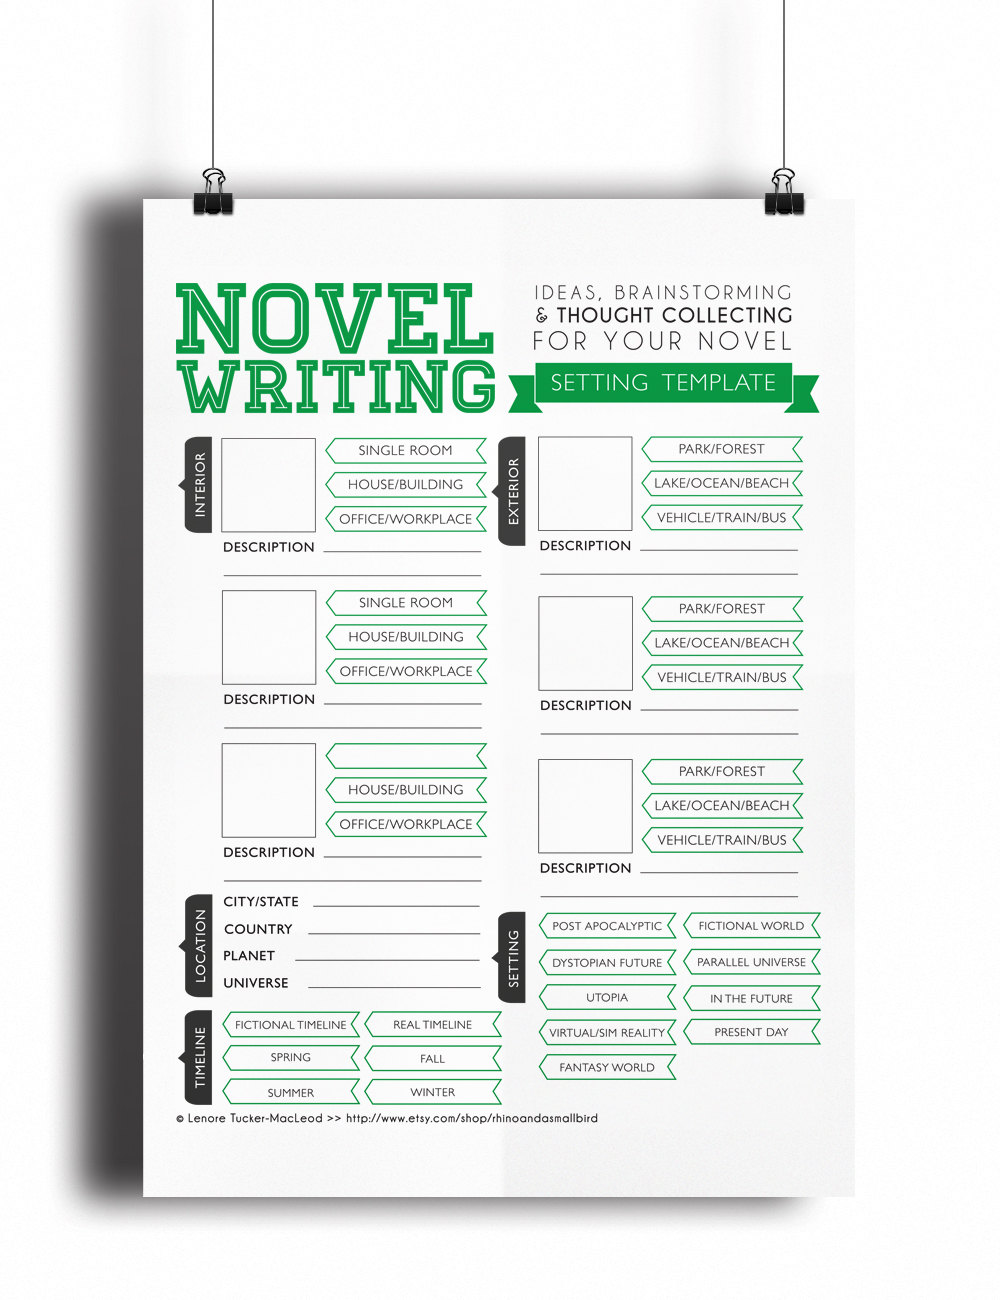 Christmas Gifts for Writers - Novel Writing Templates